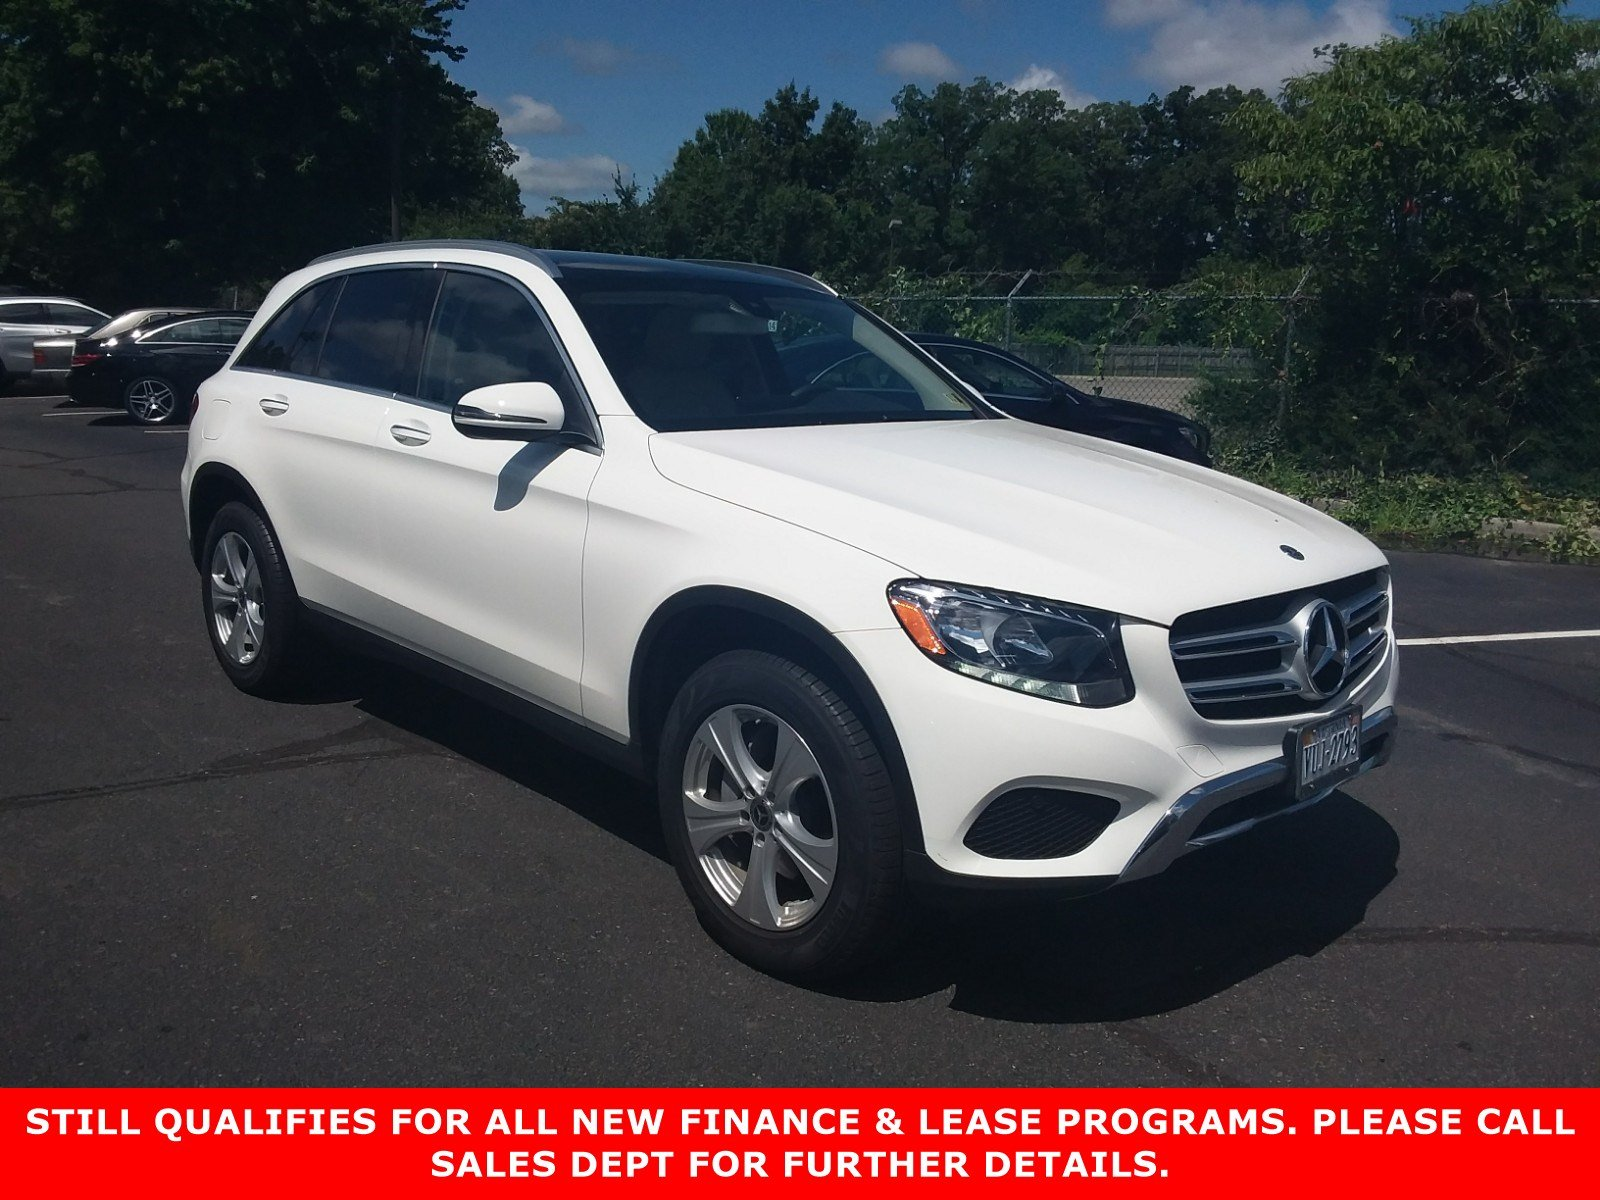 Pre Owned 2018 Mercedes Benz GLC GLC 300 SUV in Richmond